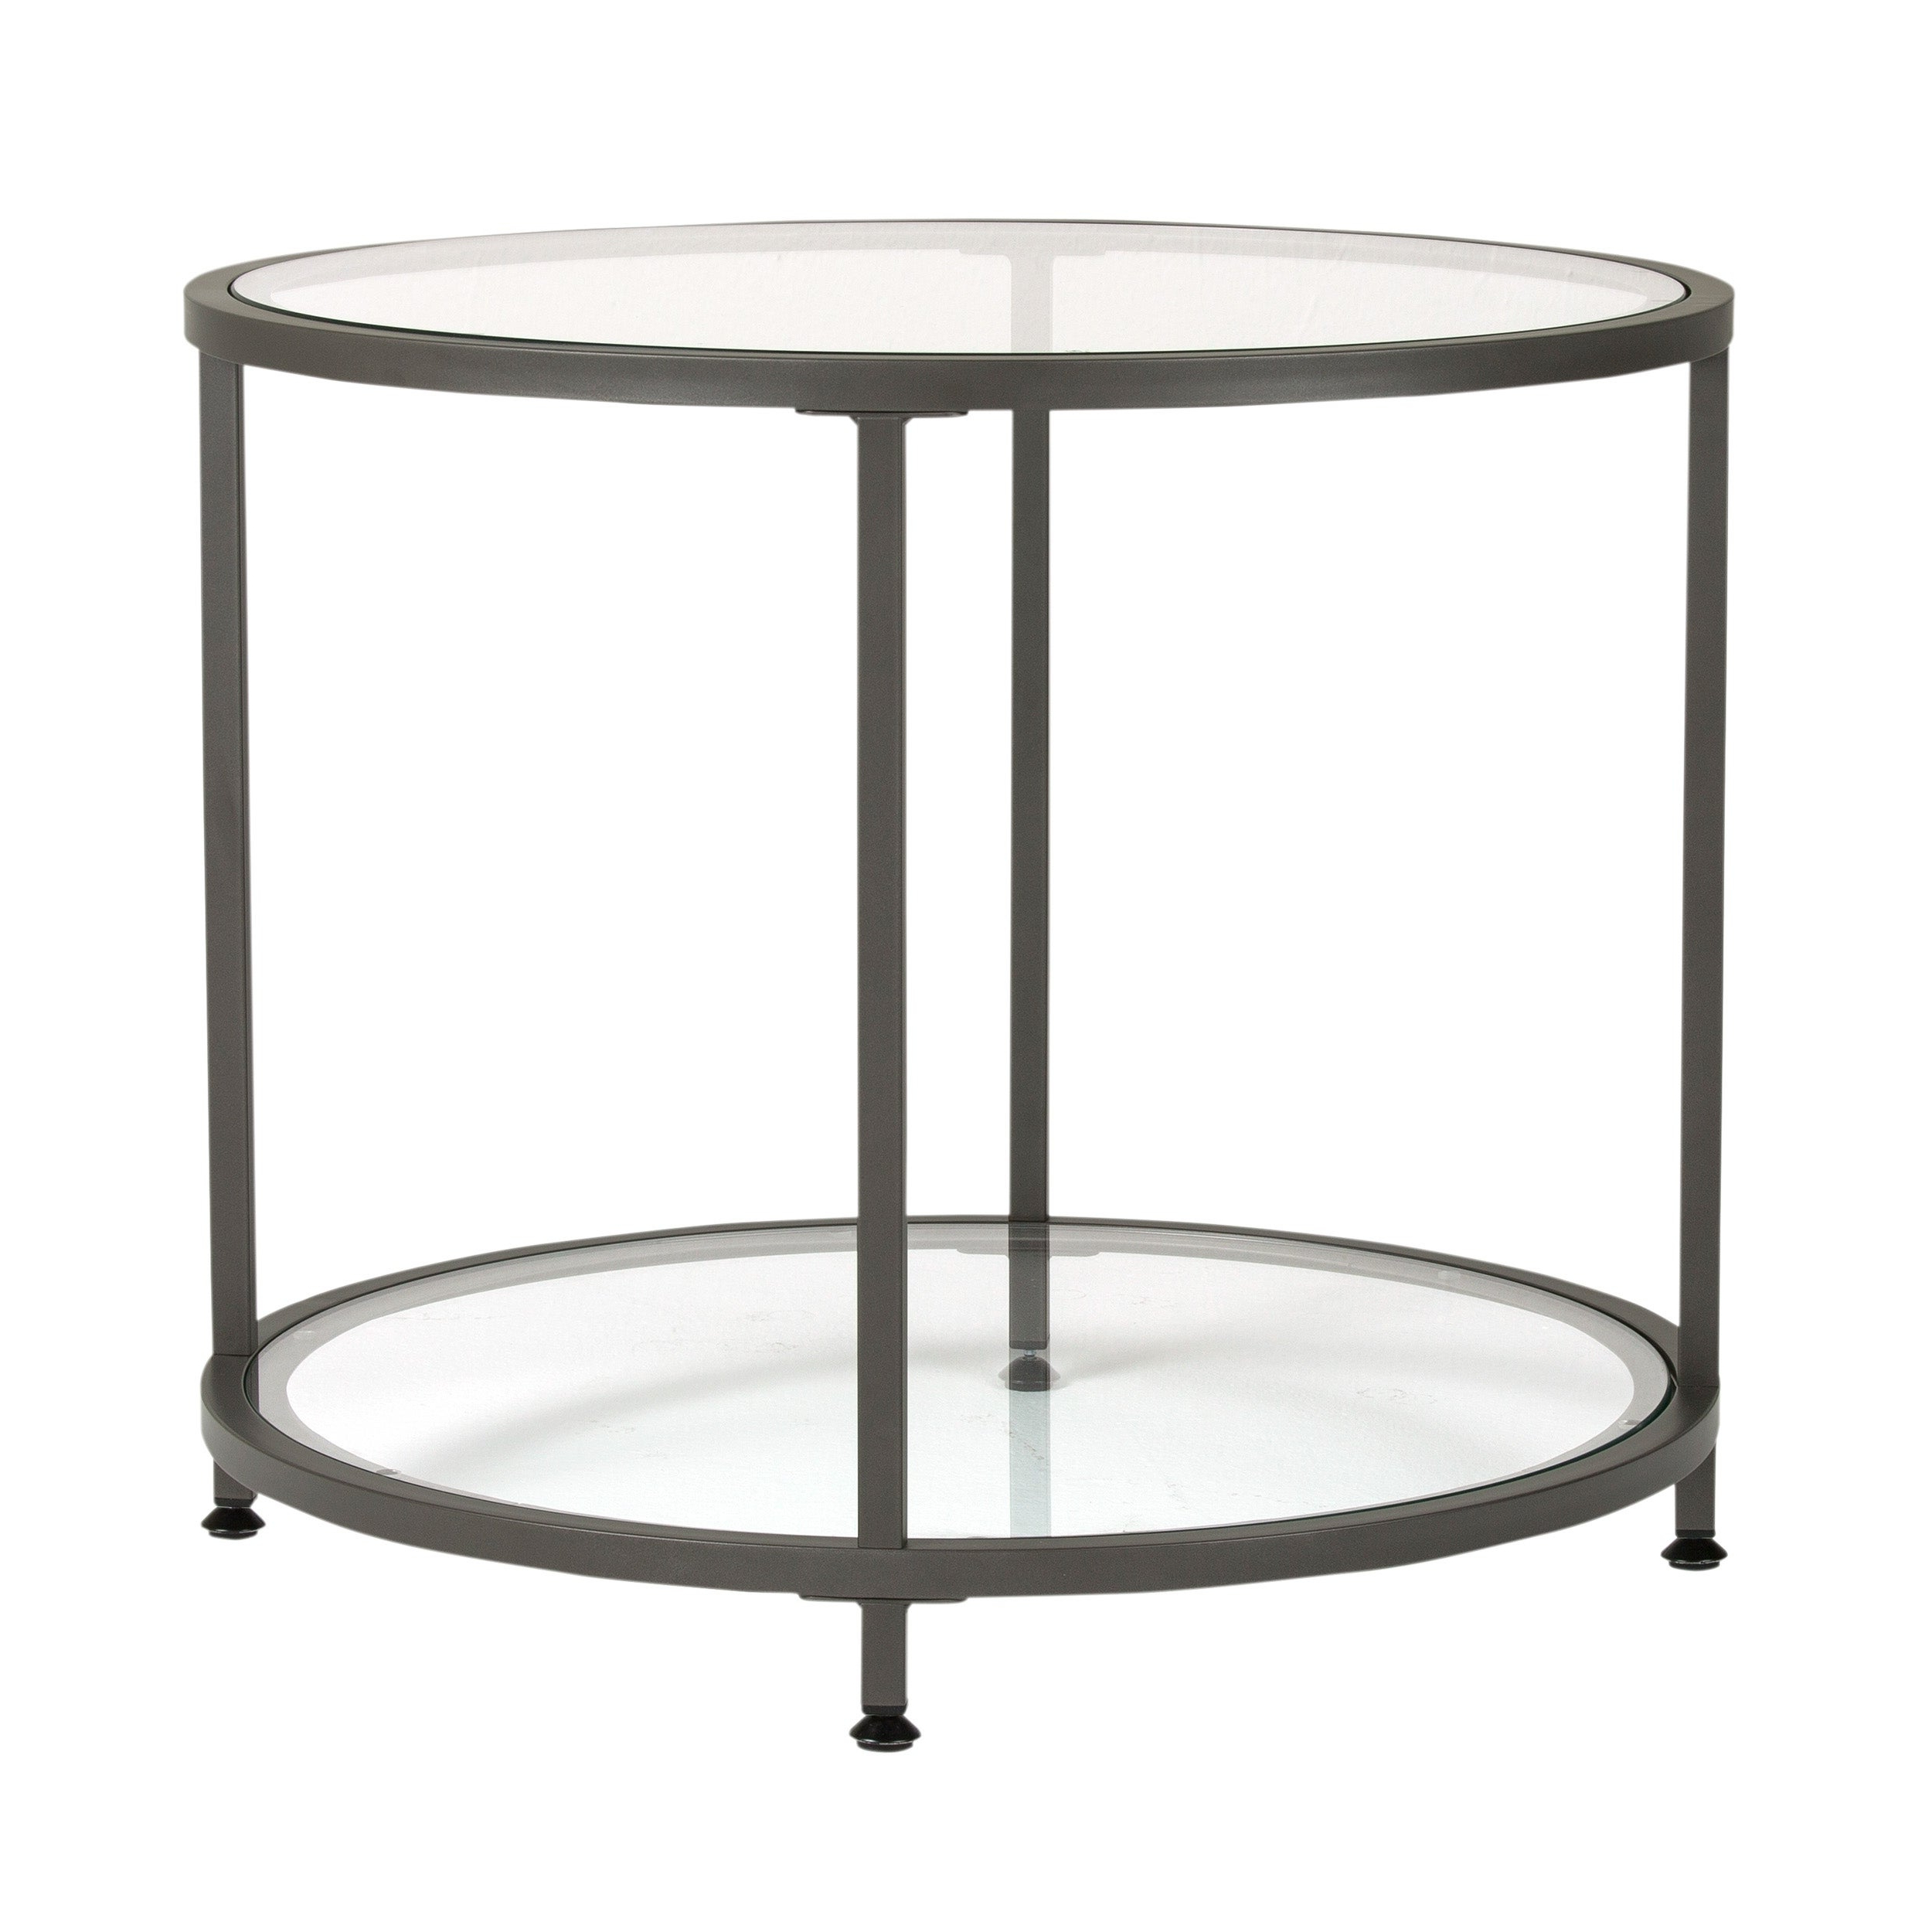 Carbon Loft Heimlich Pewter Metal Round Side Table With Preferred Carbon Loft Heimlich Pewter Steel/glass Round Coffee Tables (View 7 of 20)